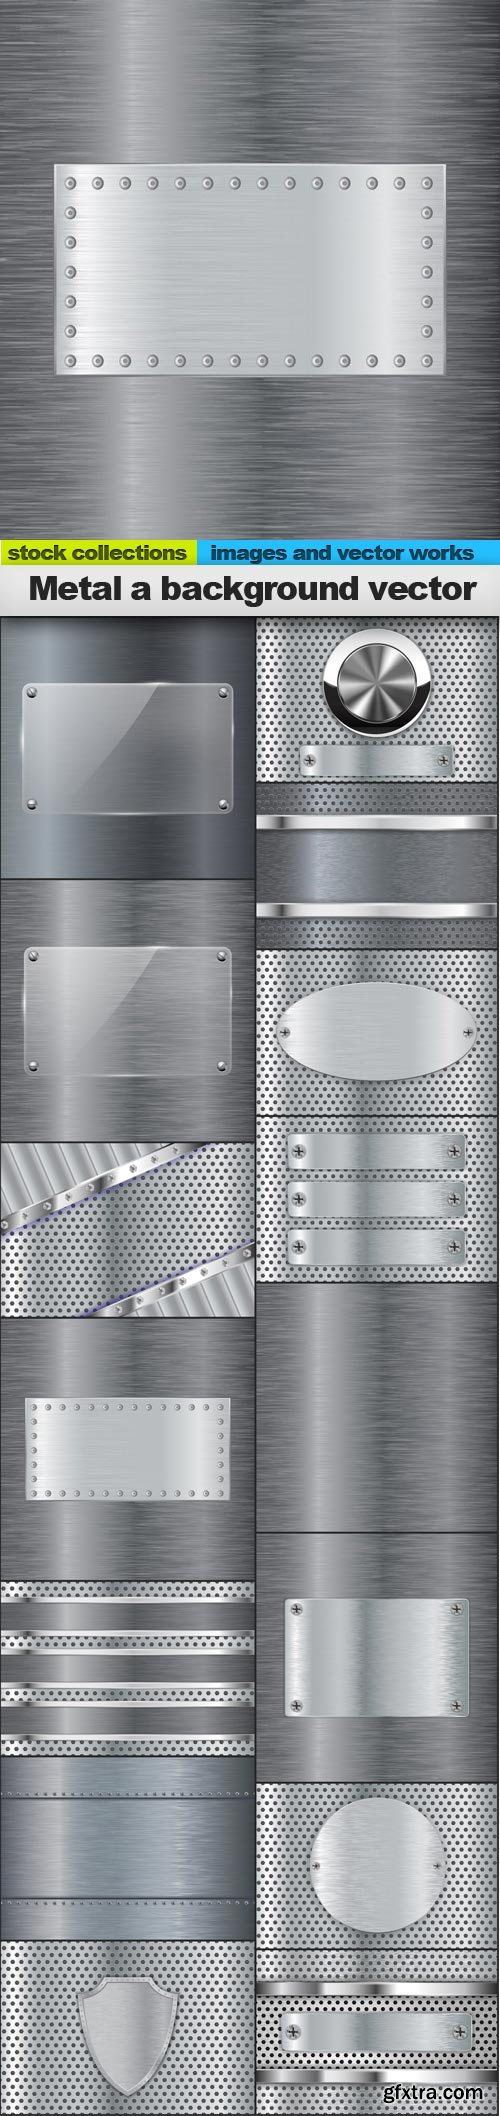 Metal a background vector, 15 x EPS